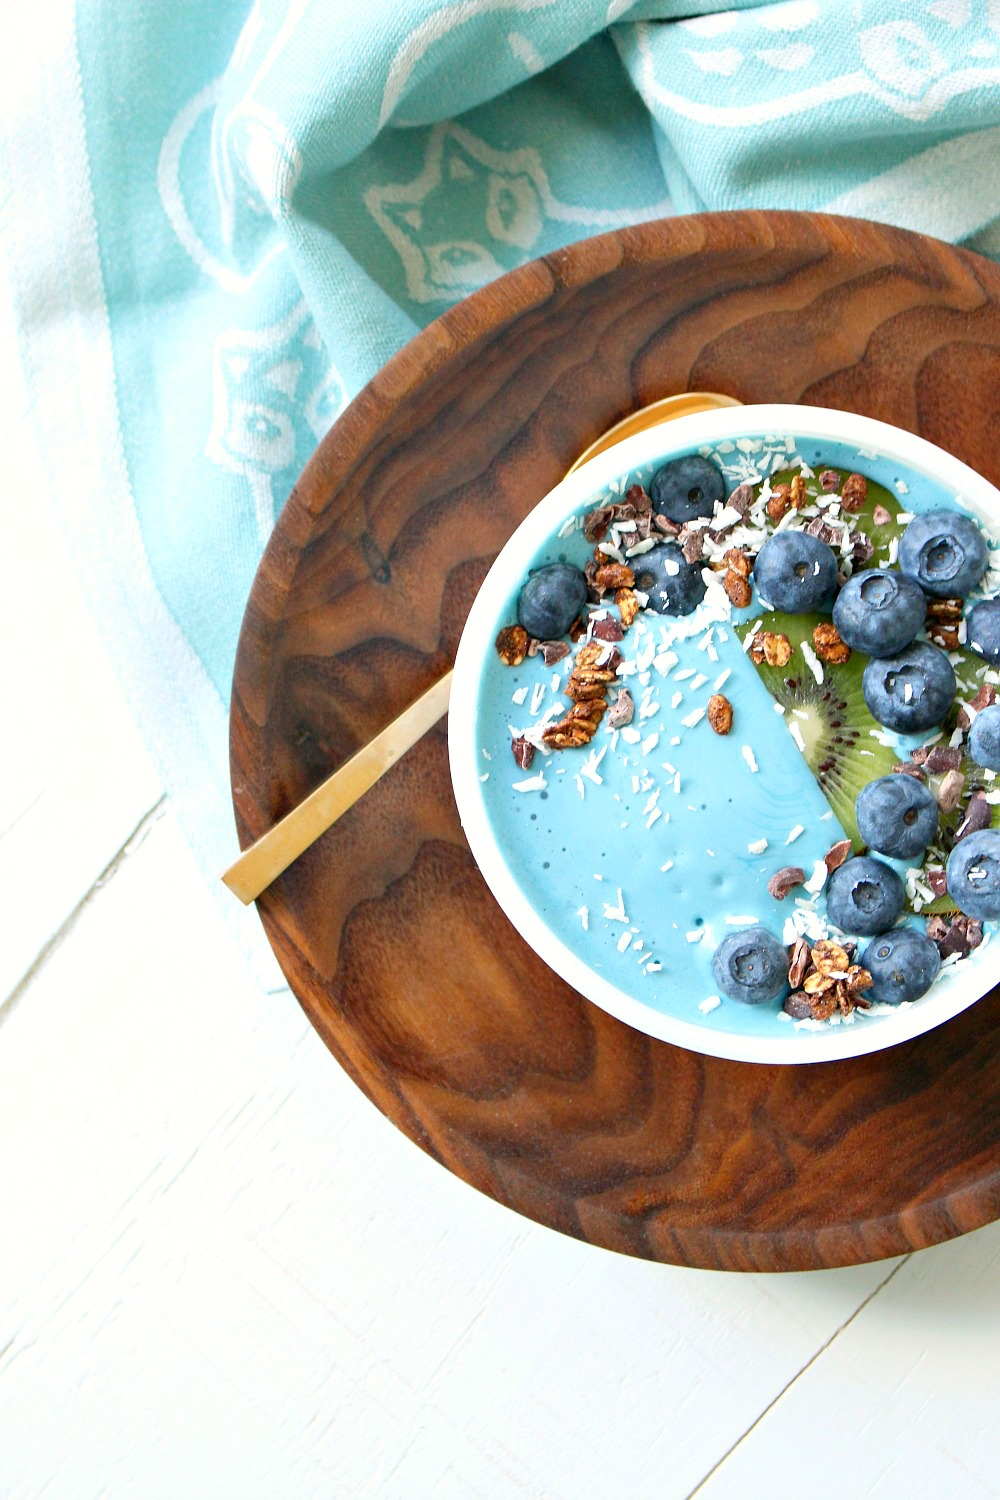 How to Make an All Natural Turquoise Smoothie Bowl // Blue Majik Mermaid Smoothie